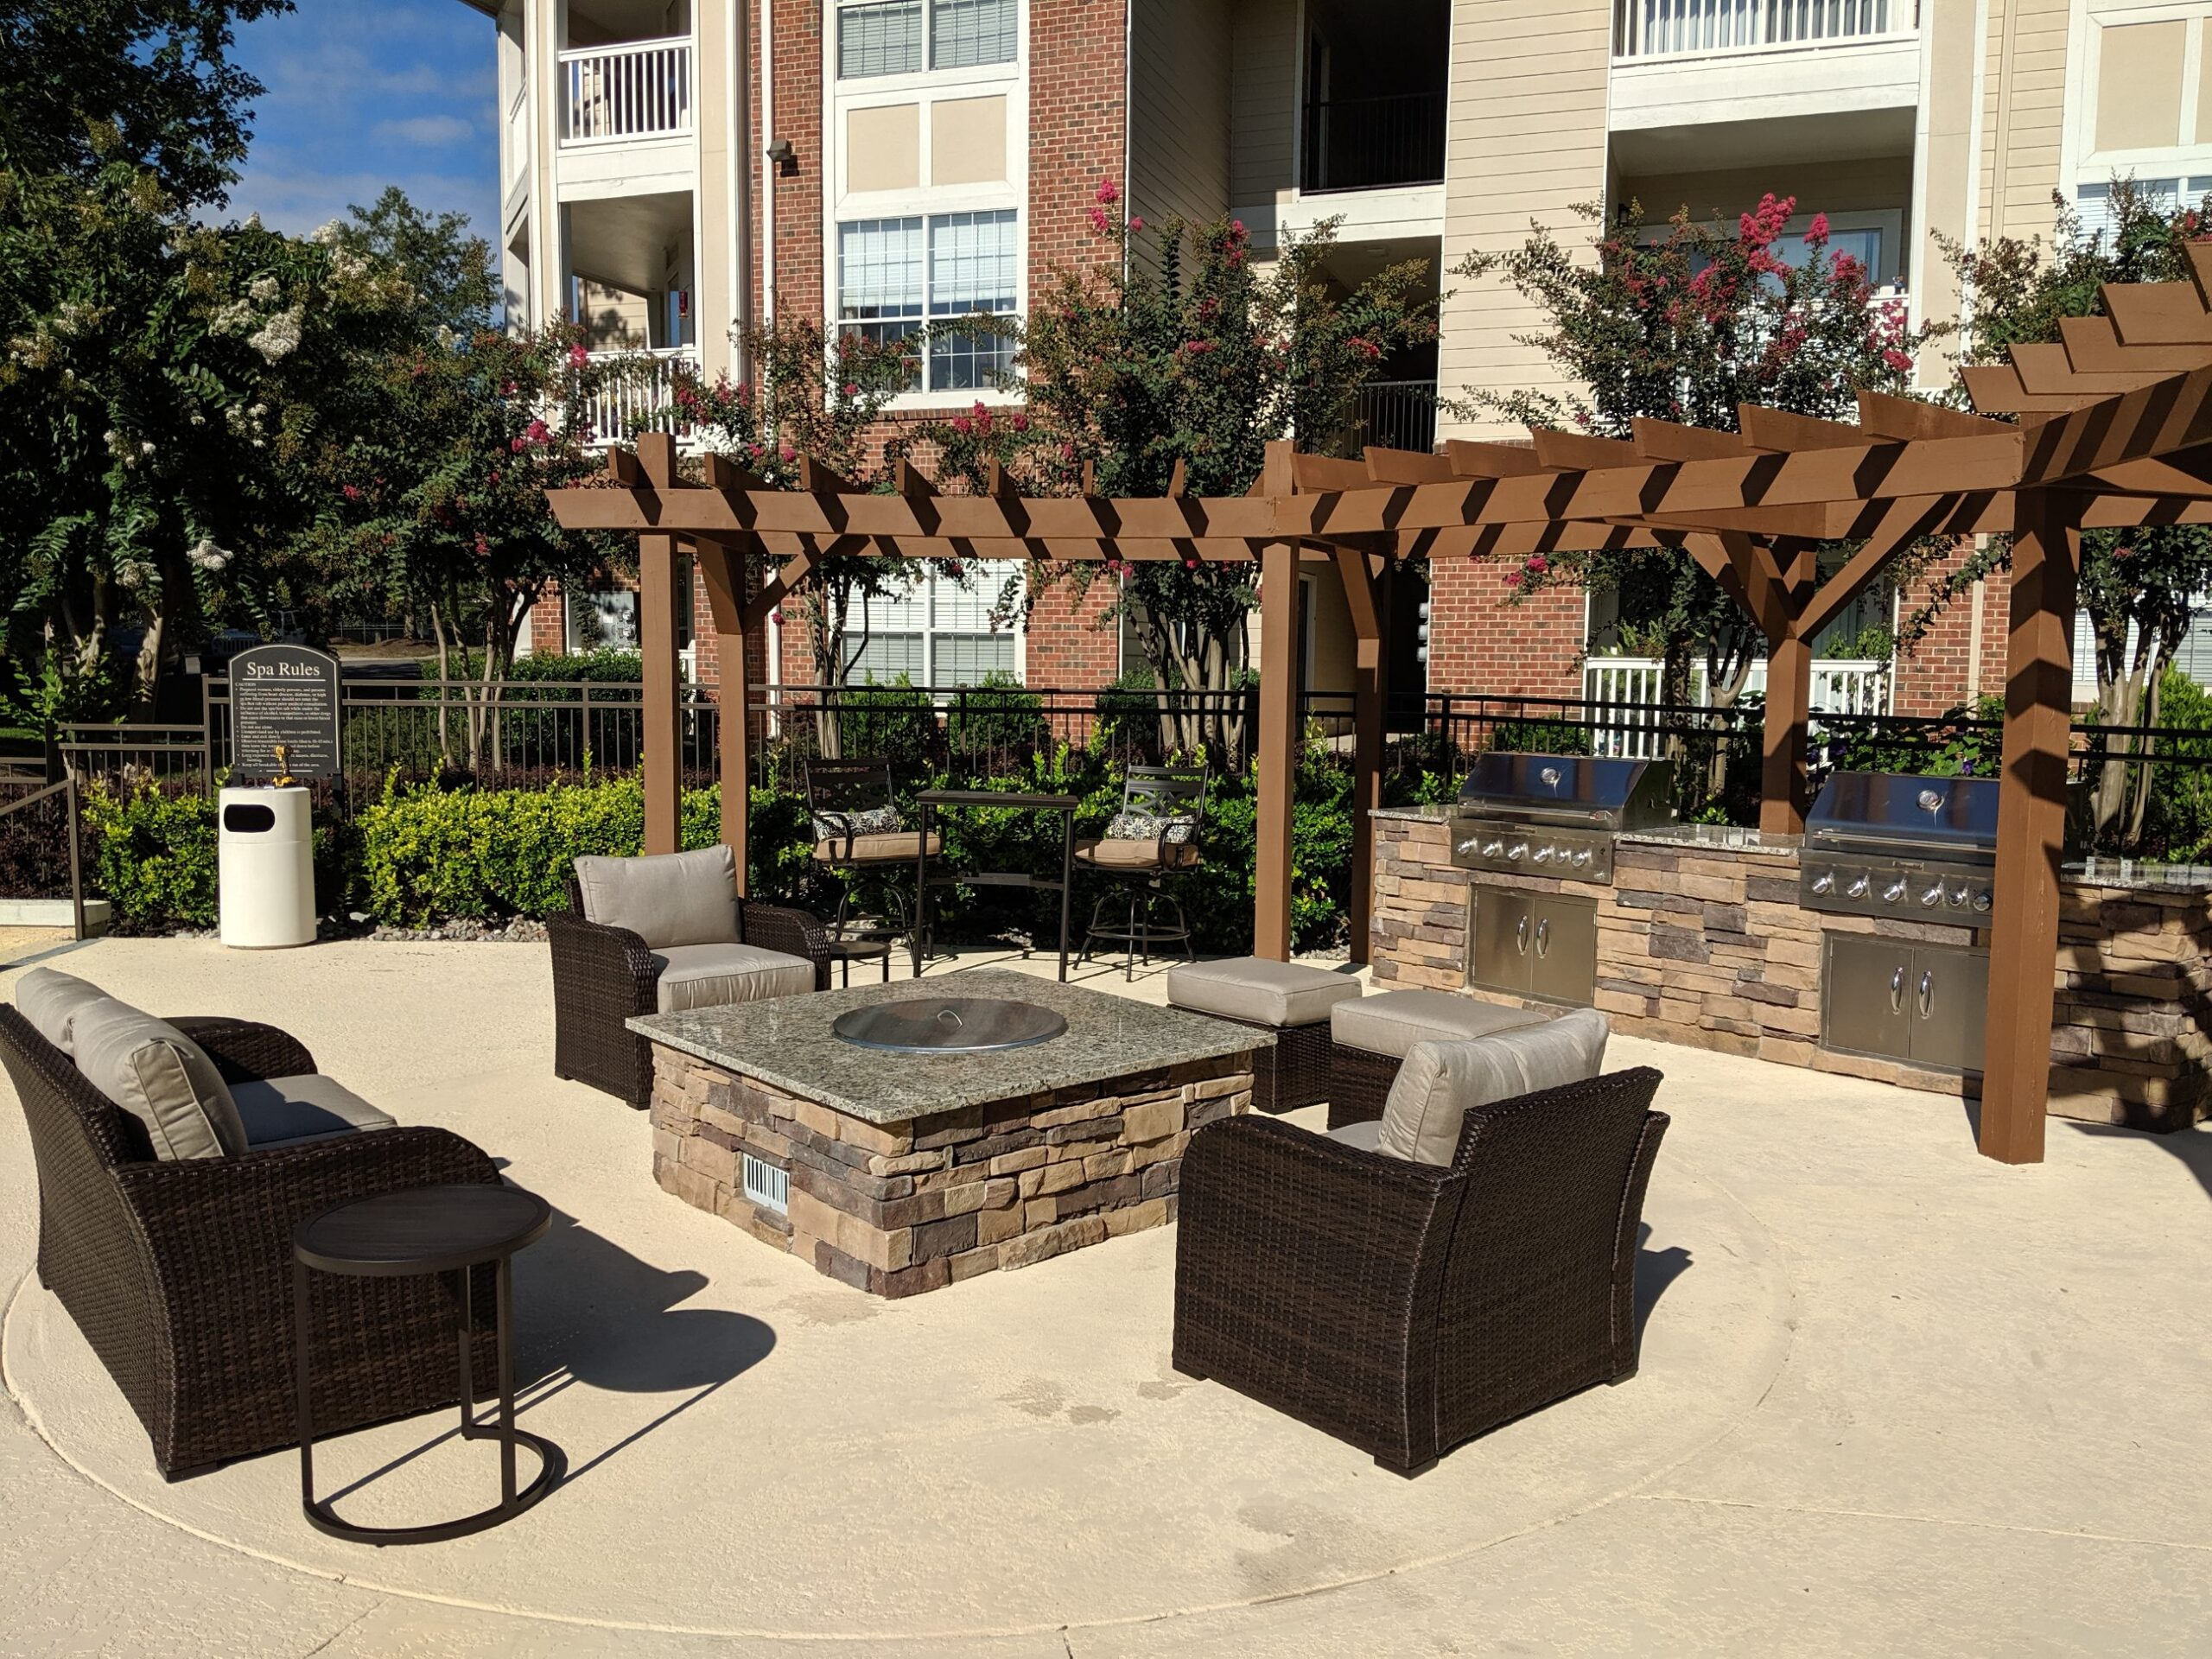 Ashborough apartment's fire pit surrounded by faux rattan lawn furniture. nearby is a two station outdoor grill under a wooden pergola